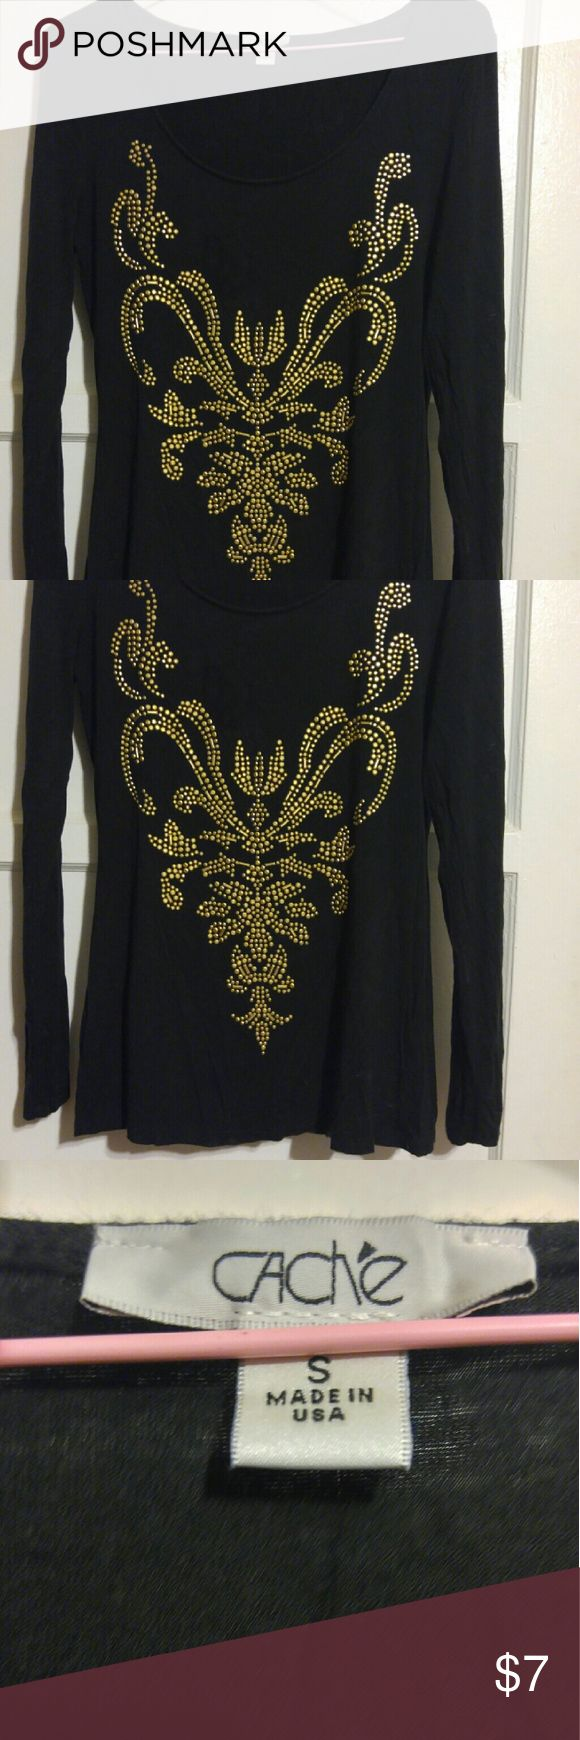 CACHE Black Long Sleeve Top CACHE black long sleeve spandex n rayon t-shirt top with muted gold embellishments in front. It is so comfortable to wear (feels good on your skin). The black is very dark black which makes the design stand out. Very stunning tee. Cache Tops Tees - Long Sleeve